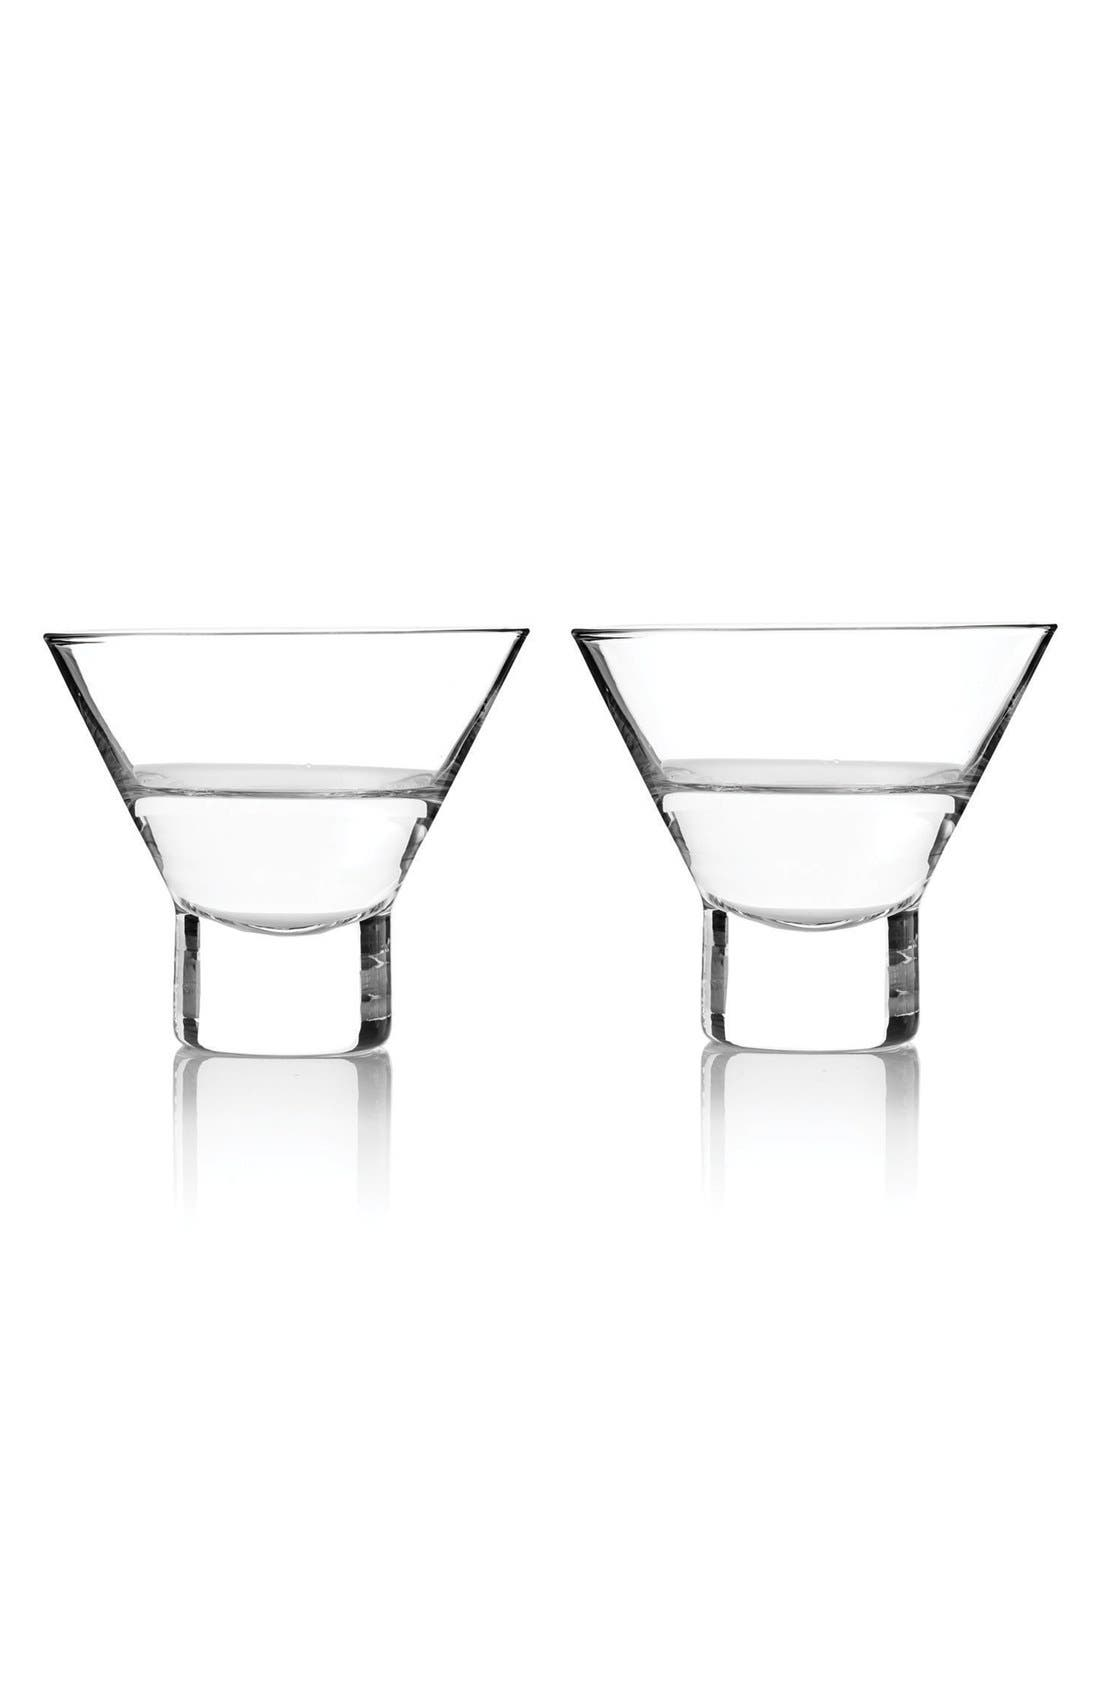 Main Image - Viski by True Fabrications Stemless Martini Glasses (Set of 2)